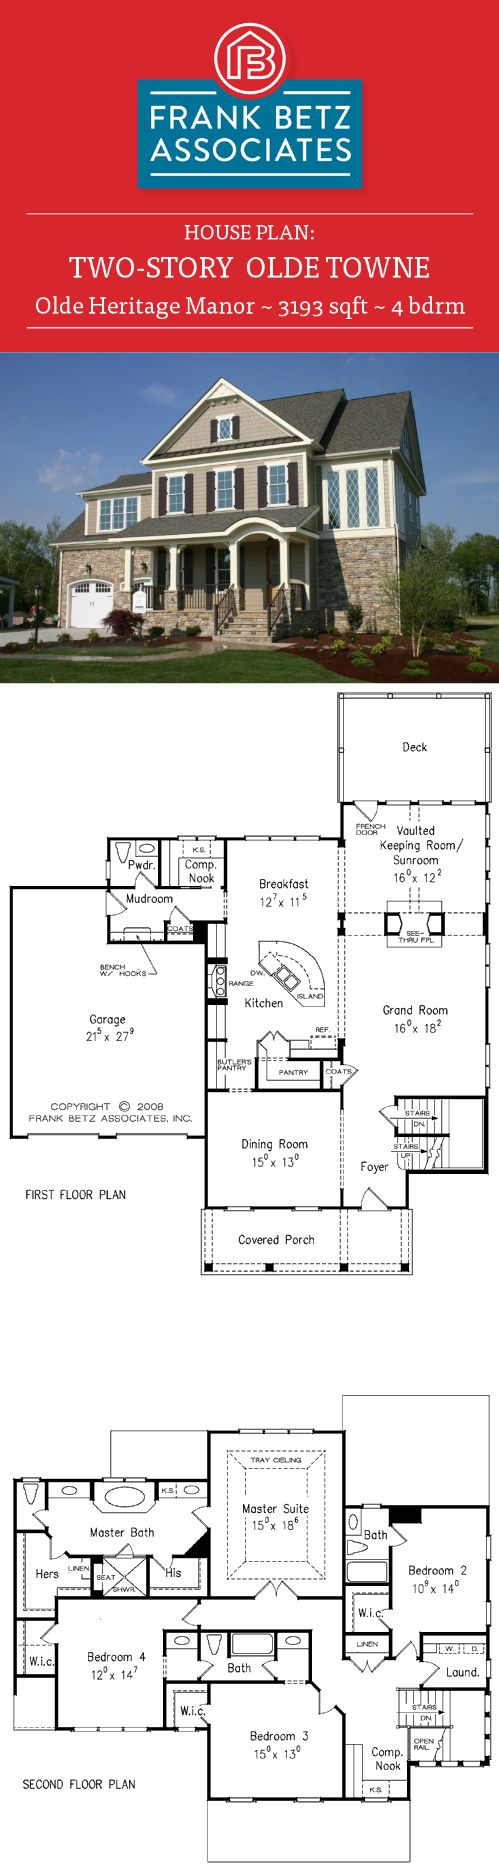 Betz house plans with large kitchen frank house plans designs ideas -  Design By Frank Betz Associates Inc Olde Heritage Manor 3193 Sqft 4 Bdrm Two Story Olde Town House